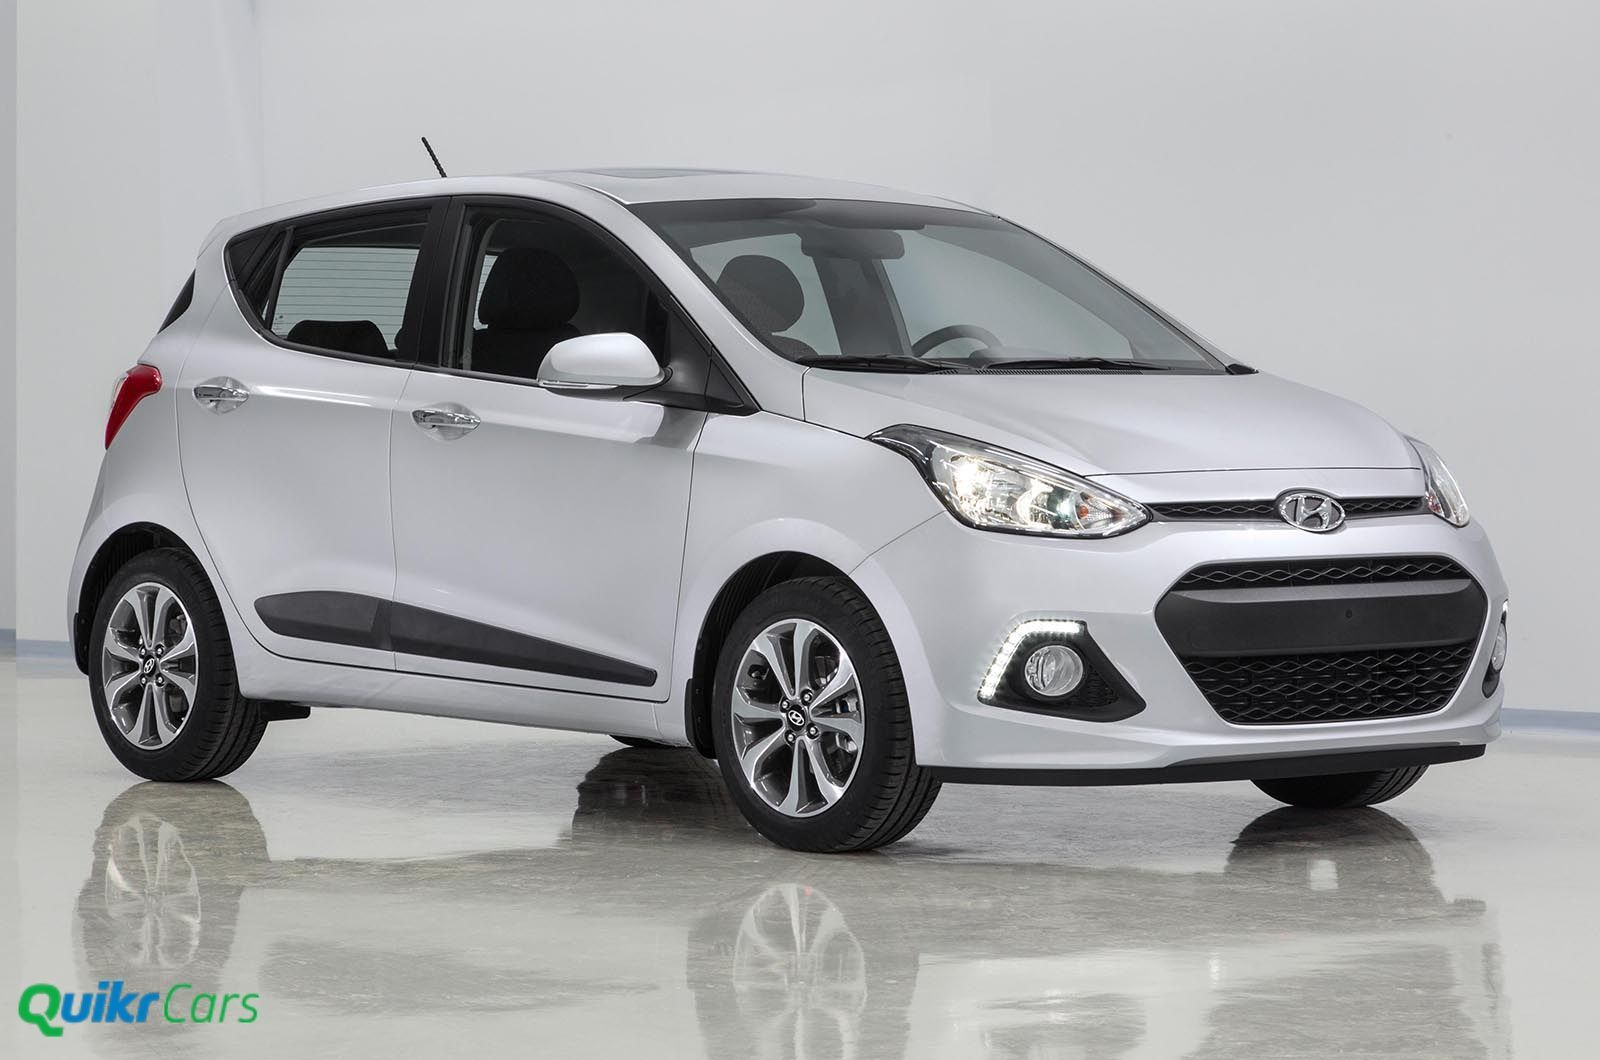 hyundai i10 grand check specification design and features. Black Bedroom Furniture Sets. Home Design Ideas